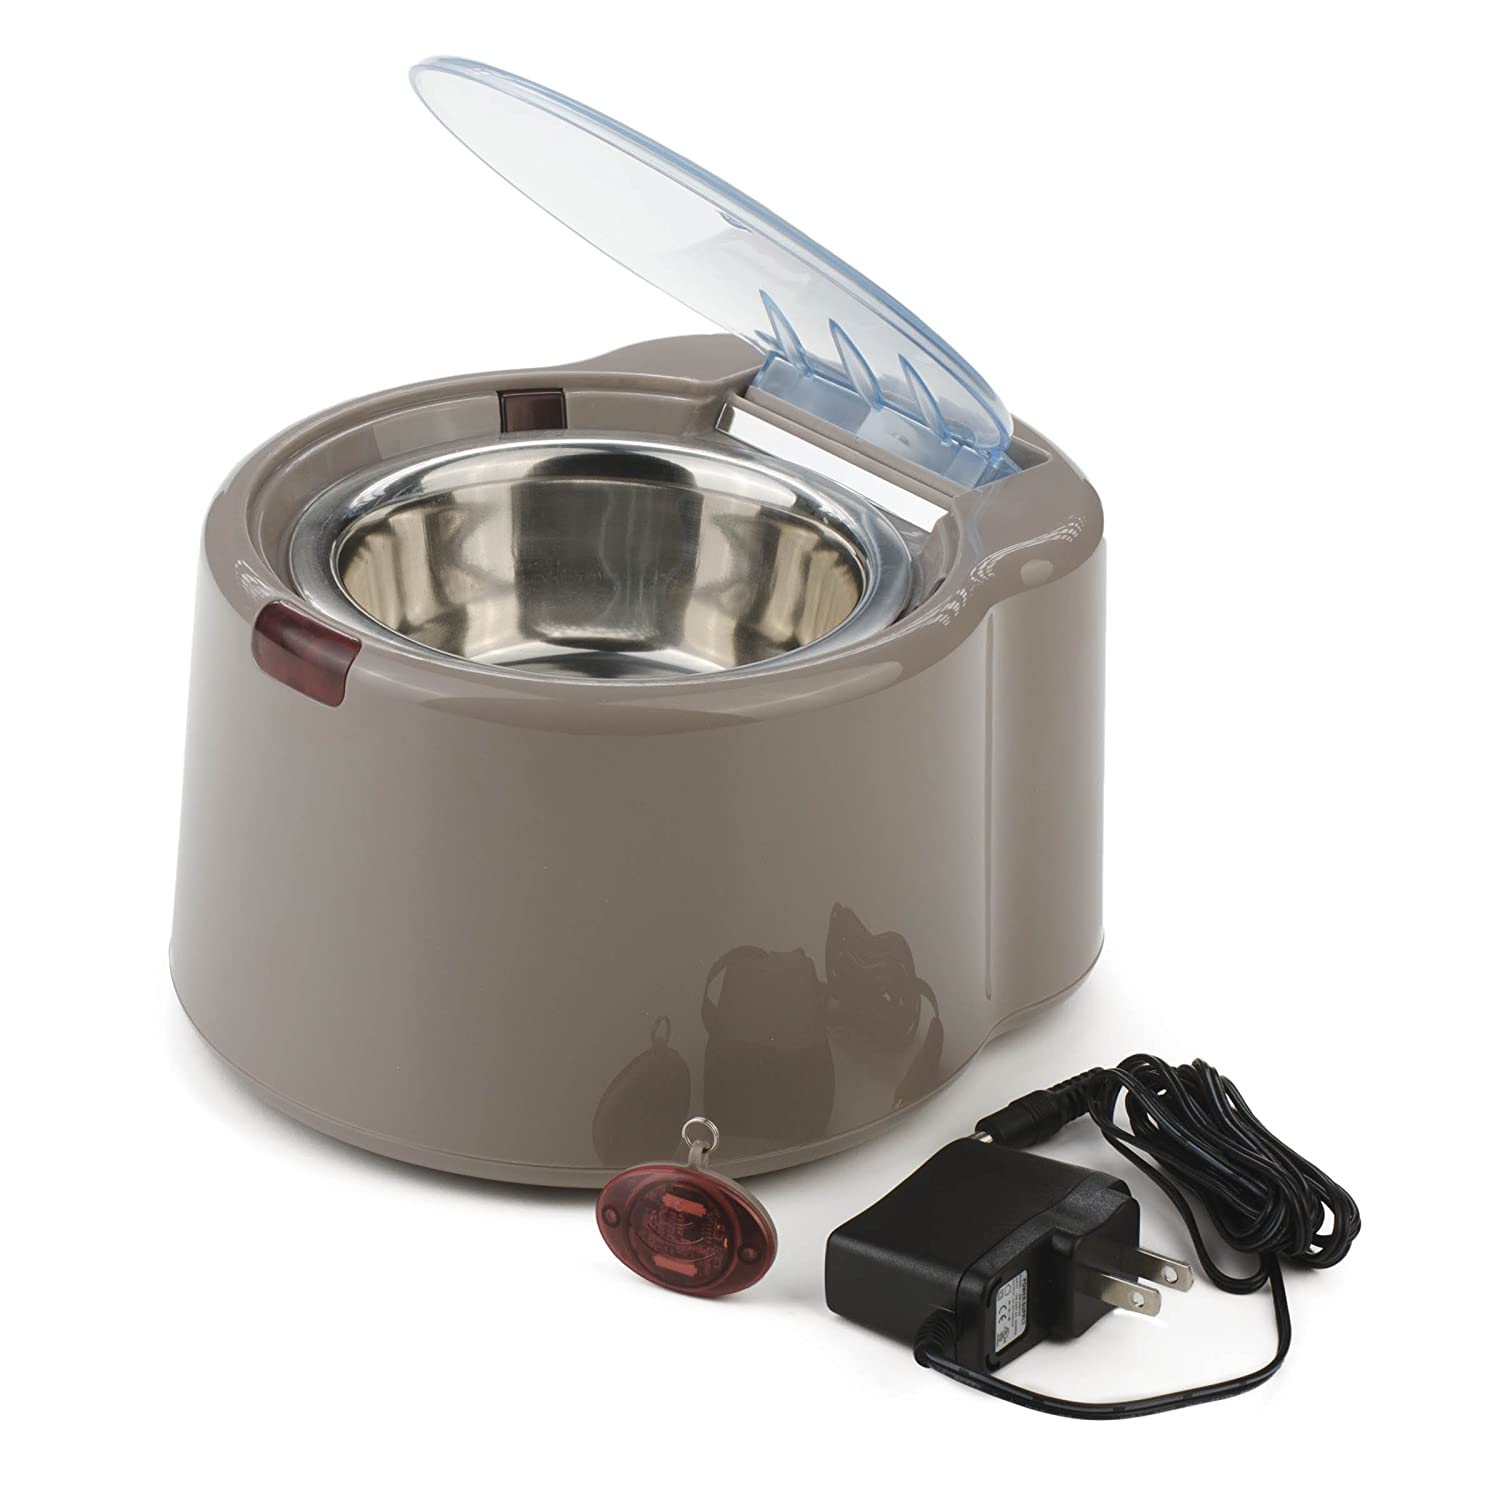 Our Pets WonderBowl Selective Pet Feeder